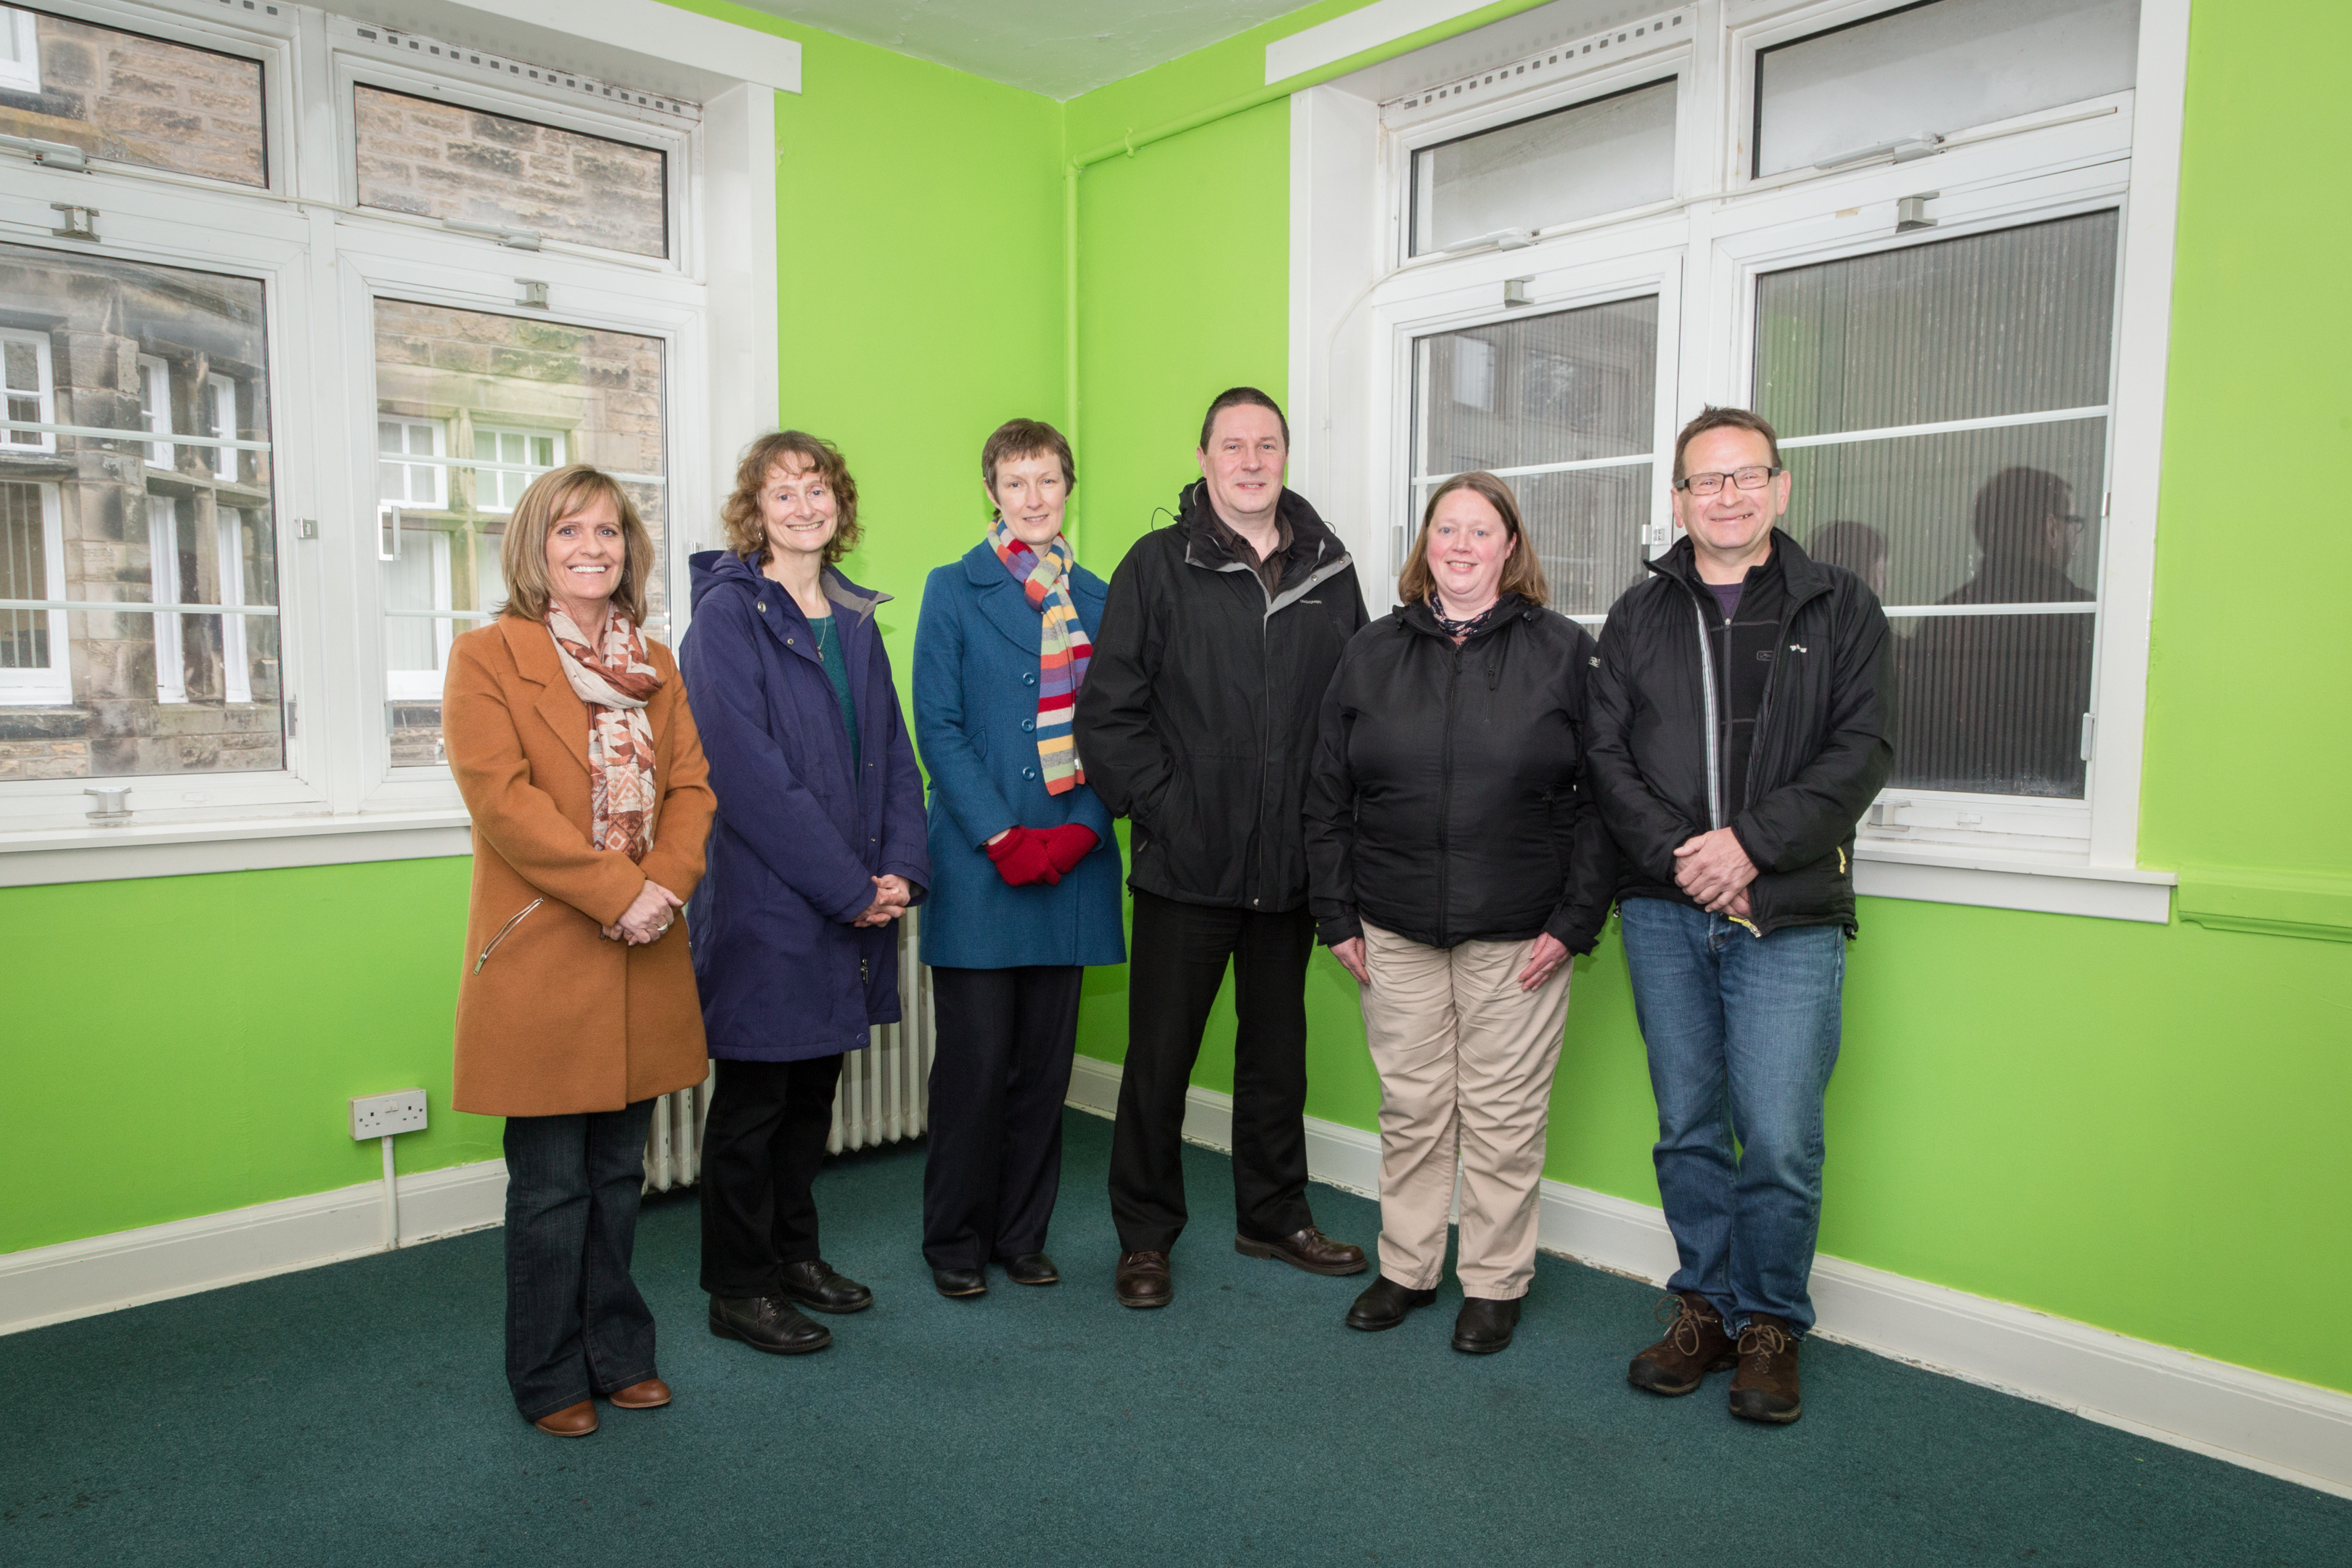 Left to right: Libby McWilliams from Fife Council with Greener Kirkcaldy's Pat Crosby, Suzy Goodsir, Andrew McDaniel, Aileen Horn and Geoff Robotham.